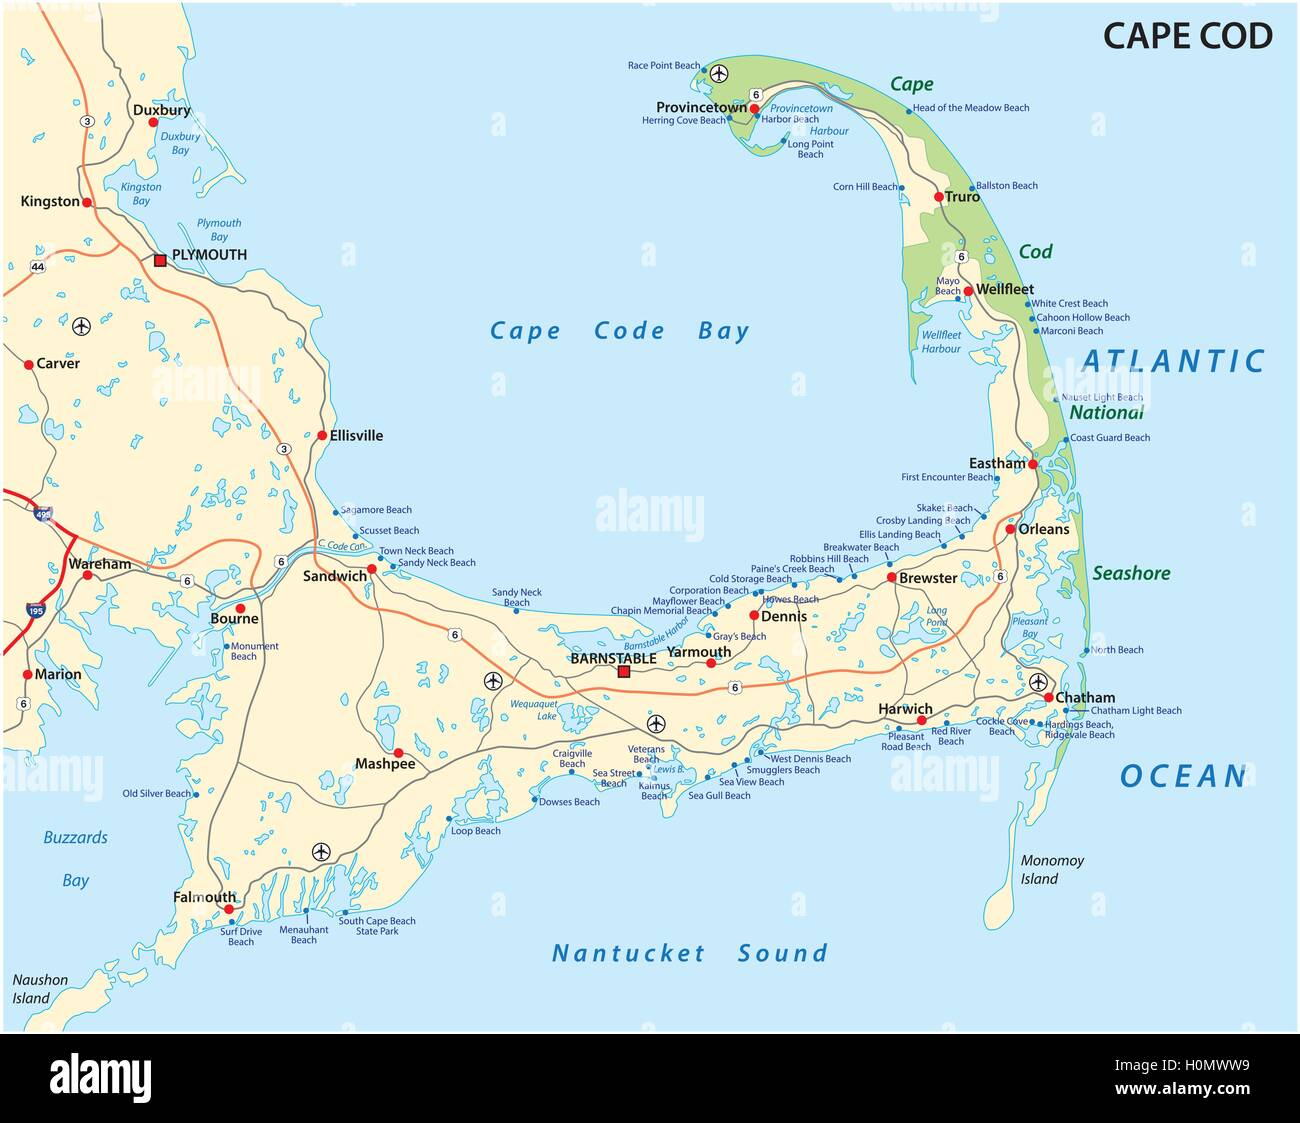 cape cod road and beach map Stock Vector Art & Illustration, Vector ...